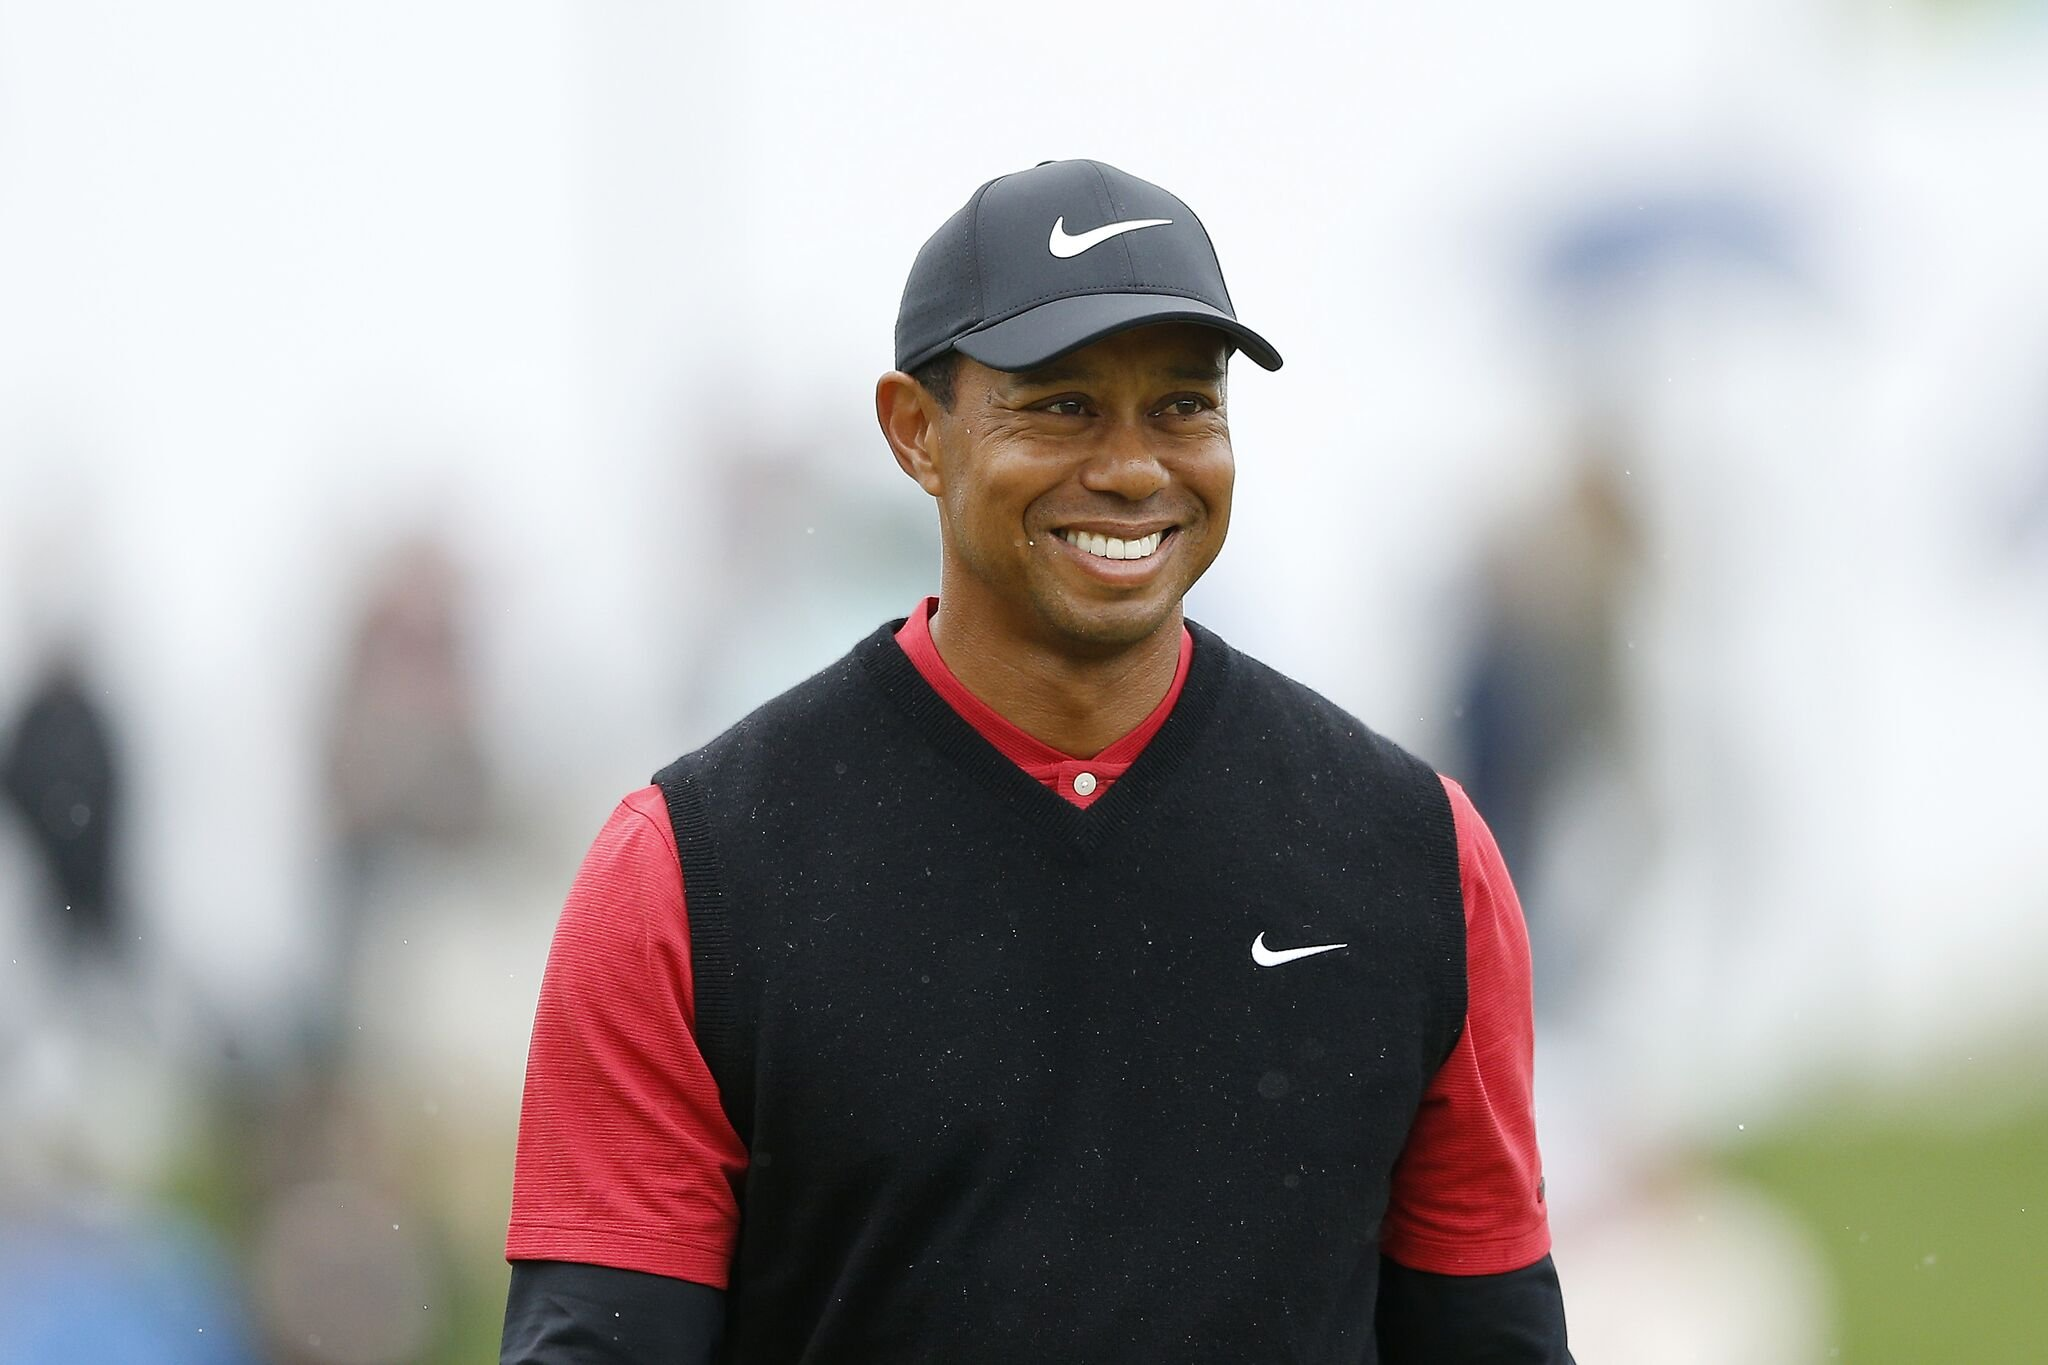 Tiger Woods of the United States reacts after chipping in from the bunker on the third hole during the final round of The PLAYERS Championship on The Stadium Course at TPC Sawgrass | Photo: Getty Images